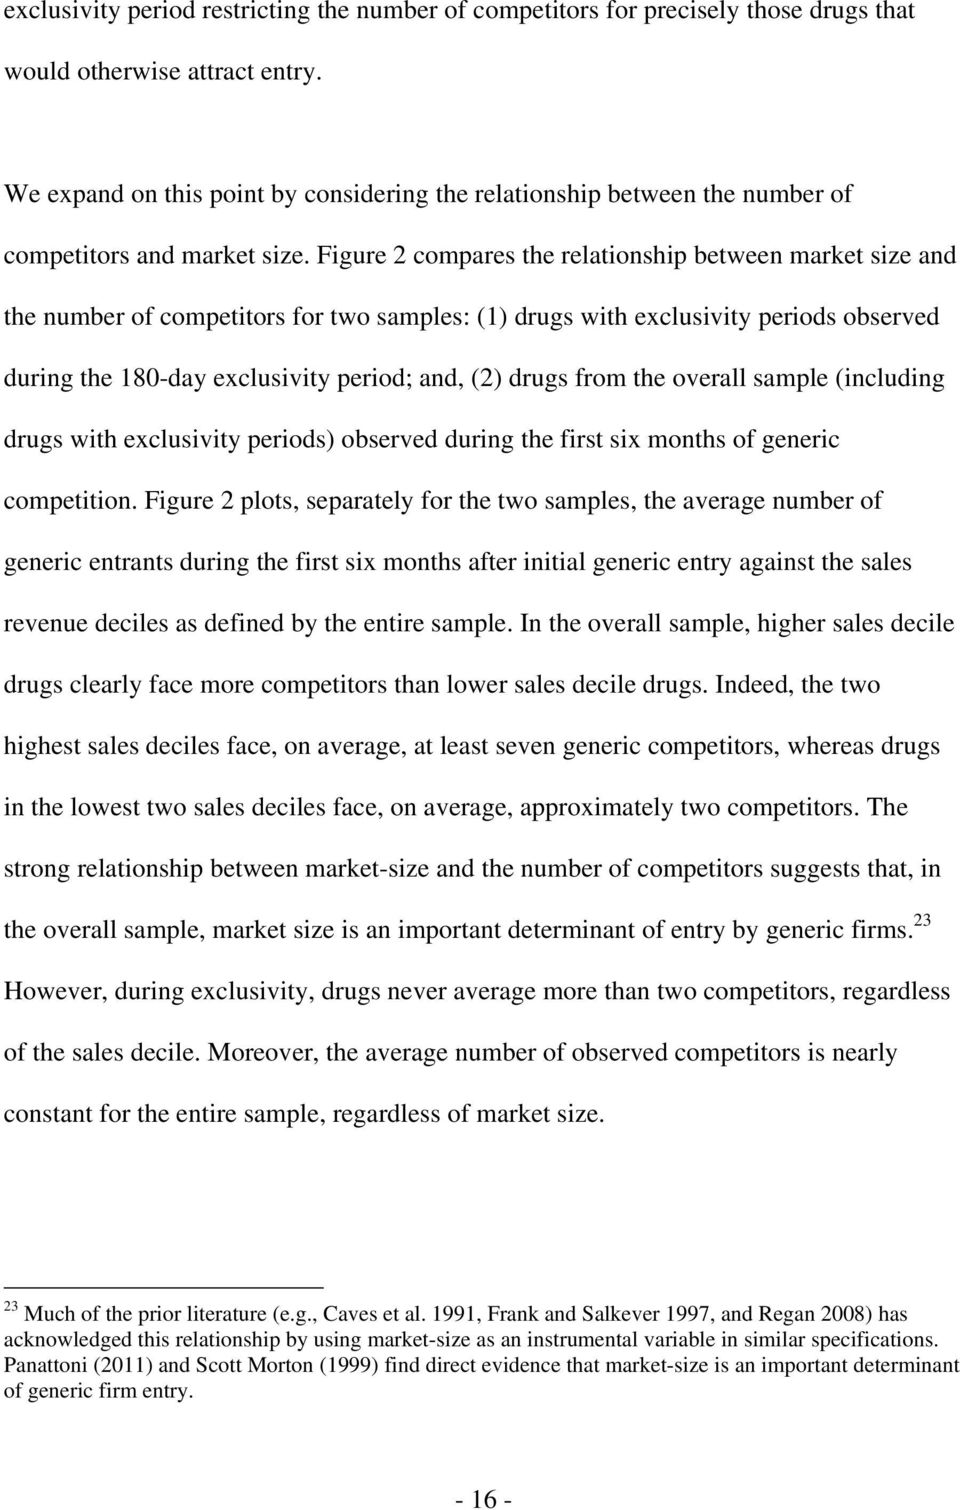 Figure 2 compares the relationship between market size and the number of competitors for two samples: (1) drugs with exclusivity periods observed during the 180-day exclusivity period; and, (2) drugs